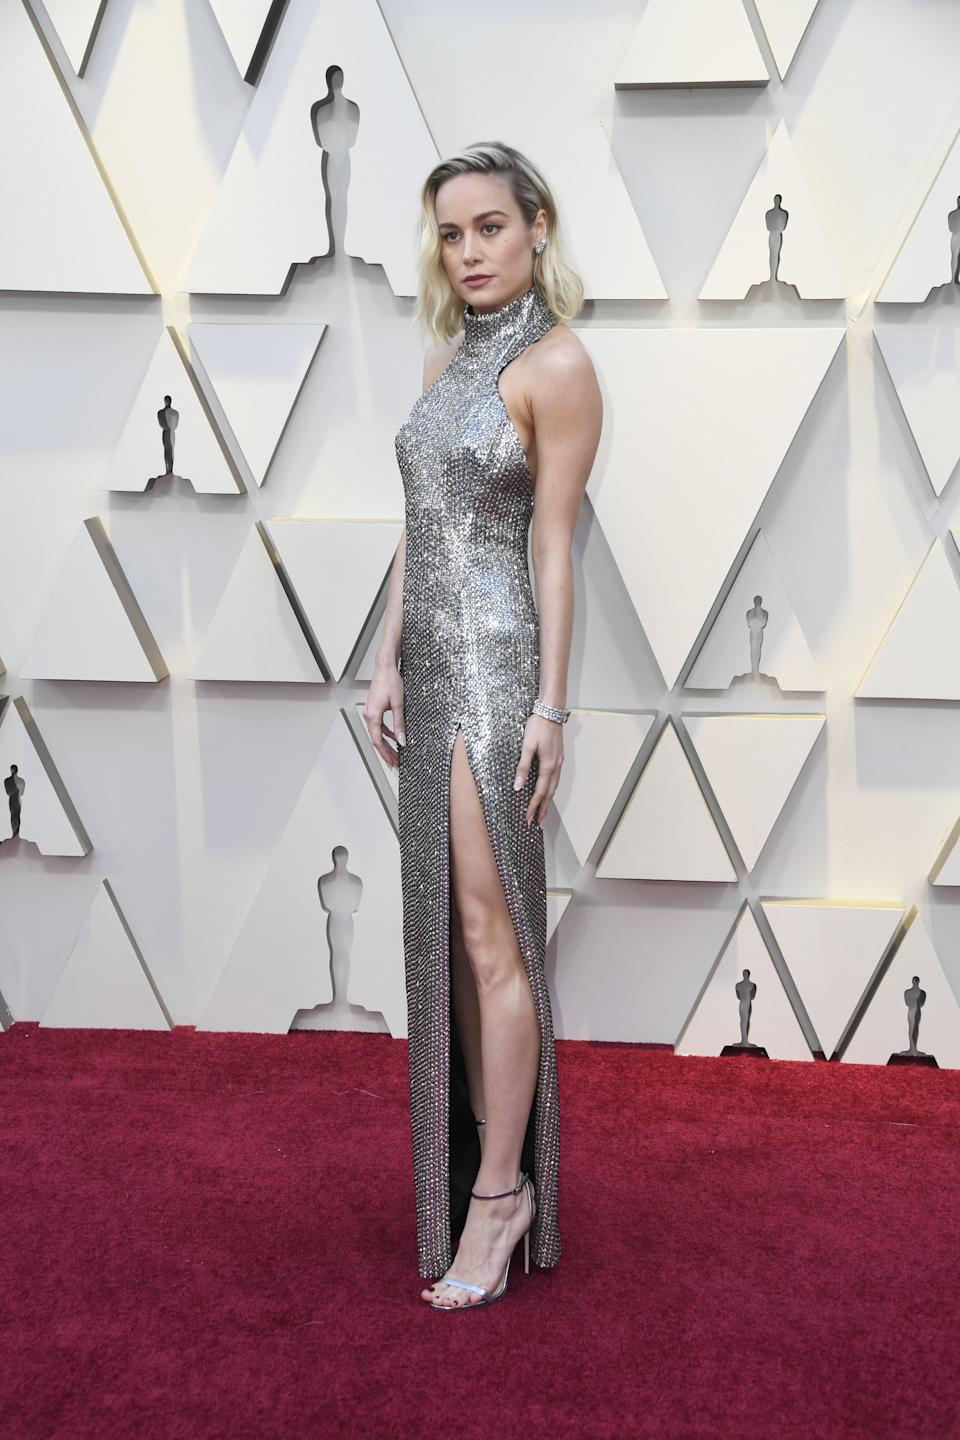 Brie Larson in Celine by Hedi Slimane and Chanel jewelry